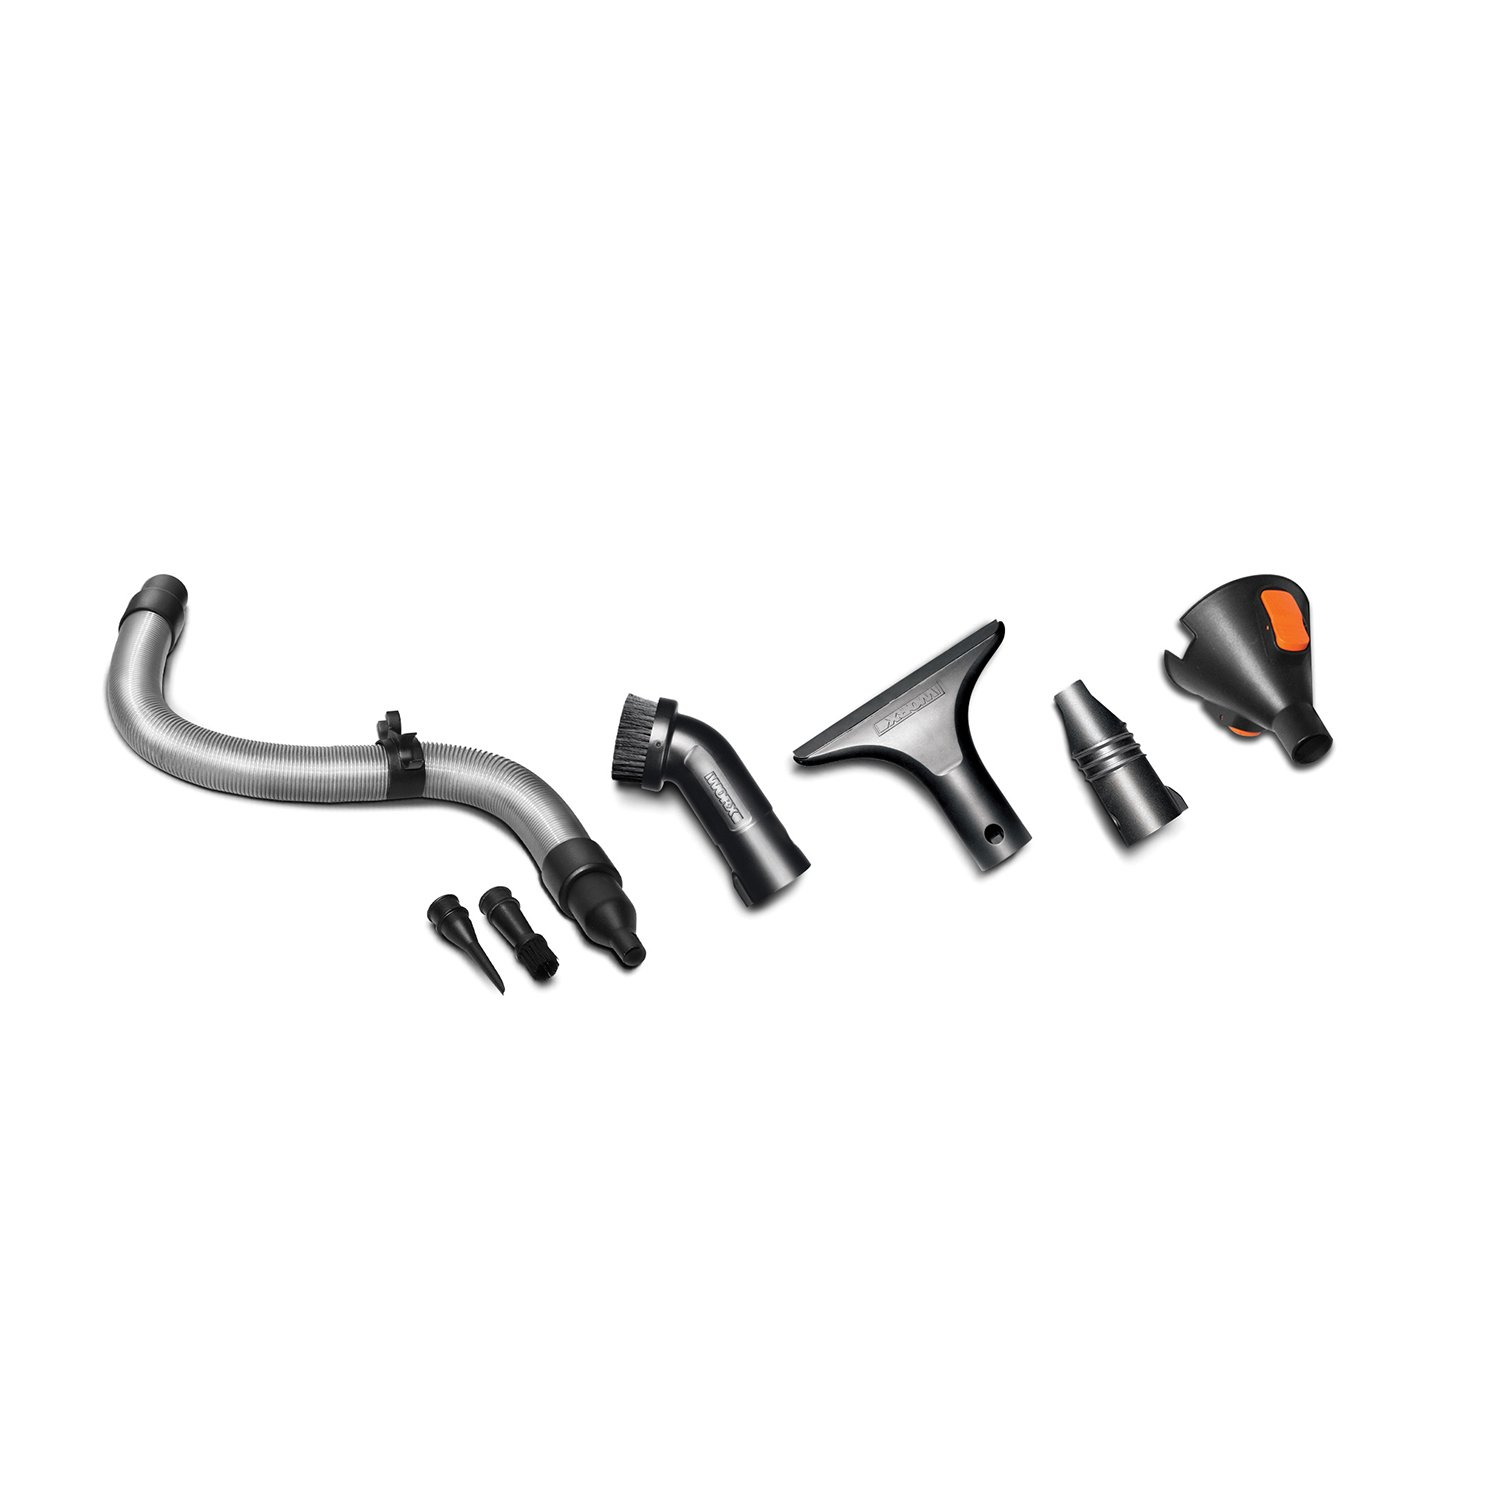 Worx WA4091 7-Piece Attachment Accessory Kit for AIR Cordless Electric Leaf Blowers